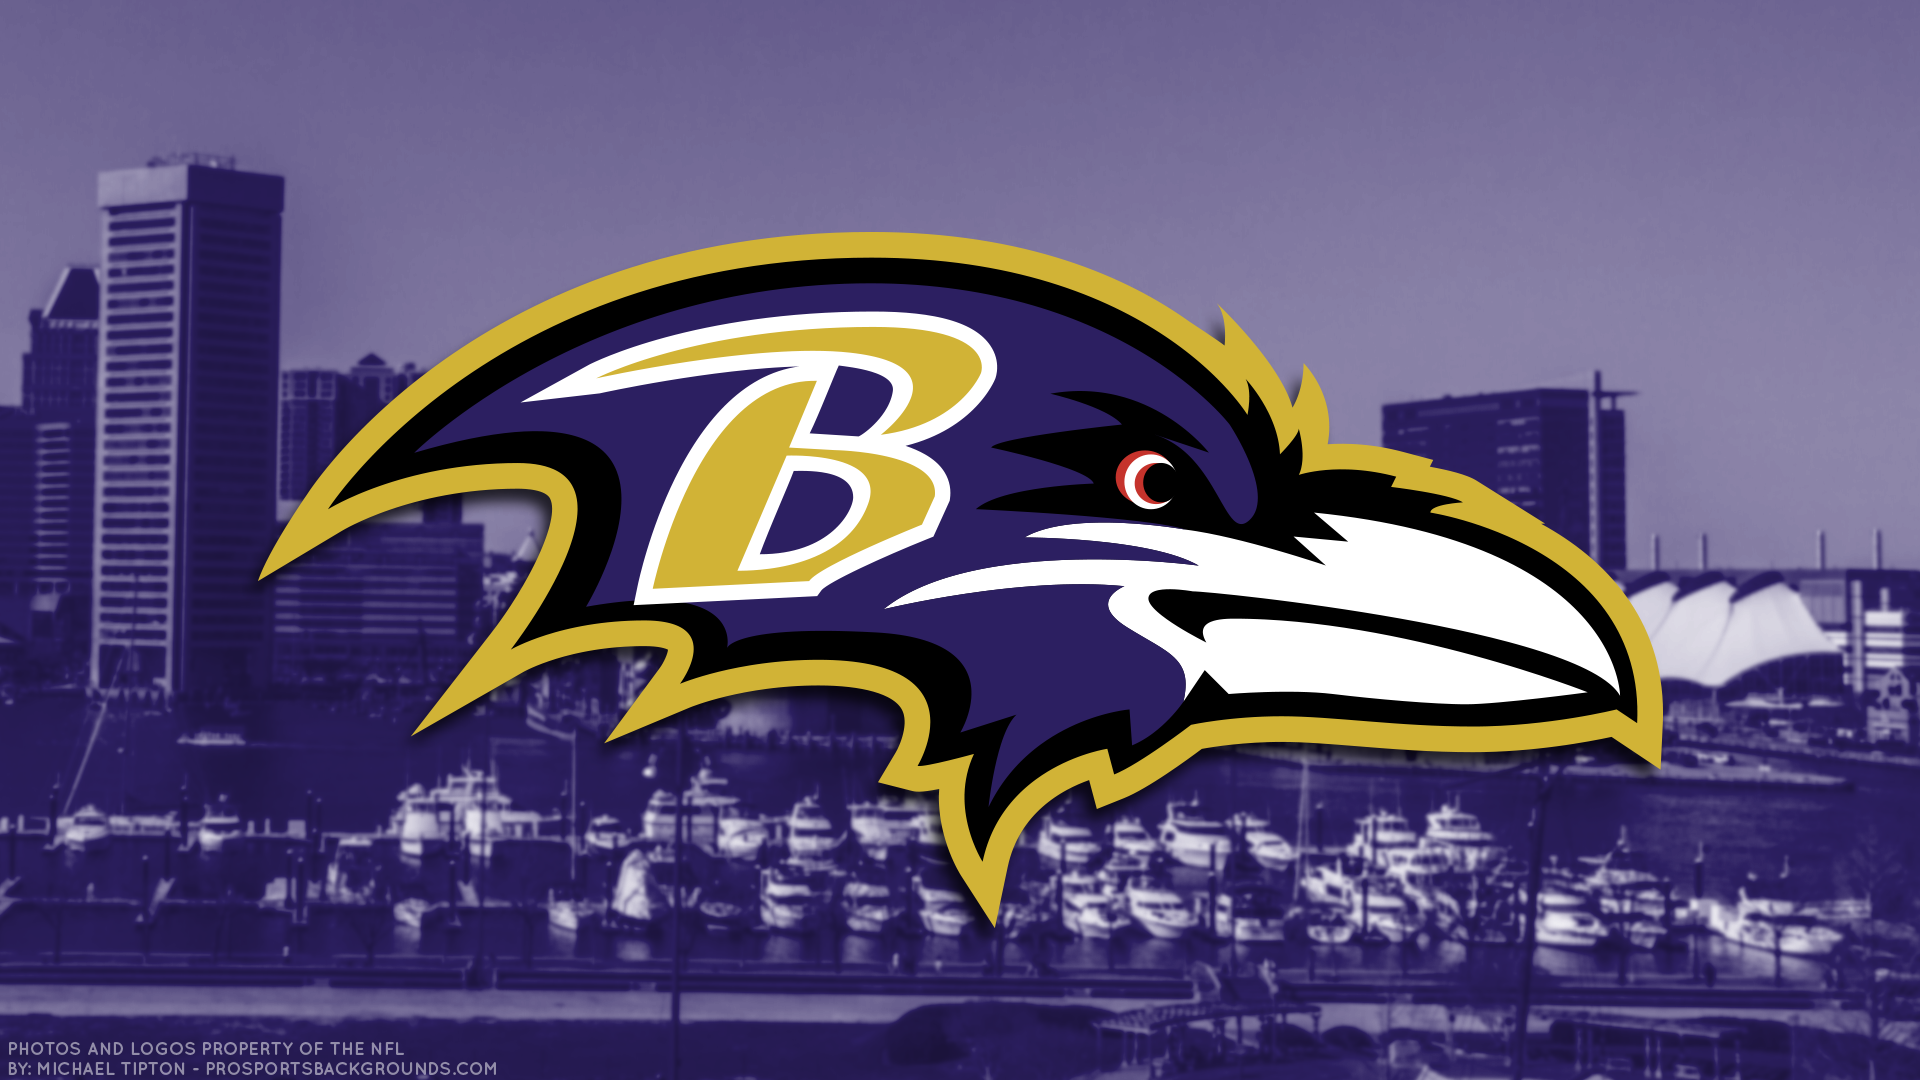 Baltimore Ravens HD Wallpaper Background Image 1920x1080 ID 1920x1080